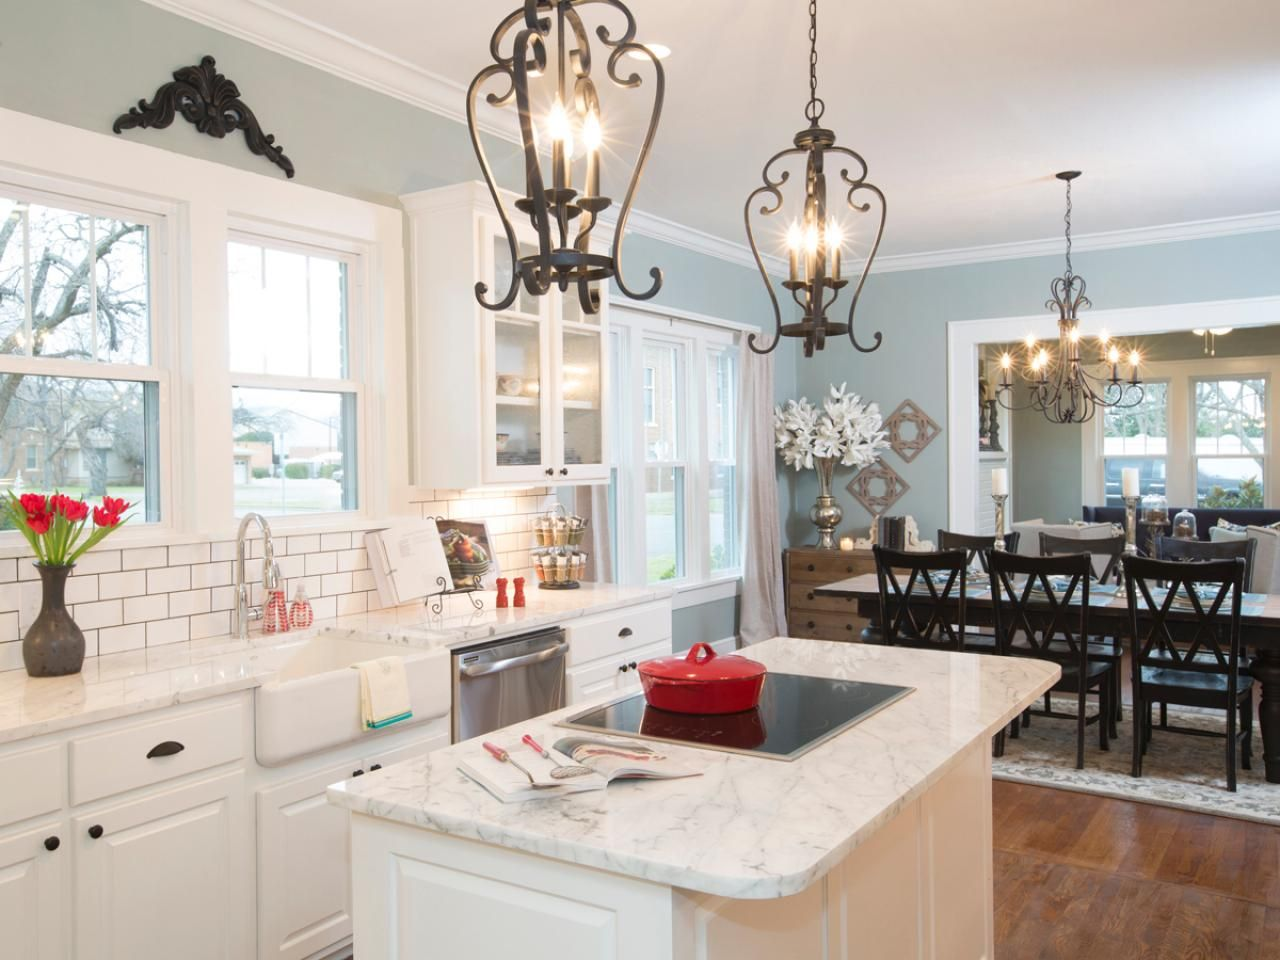 Hgtv fixer upper white kitchens - Lights